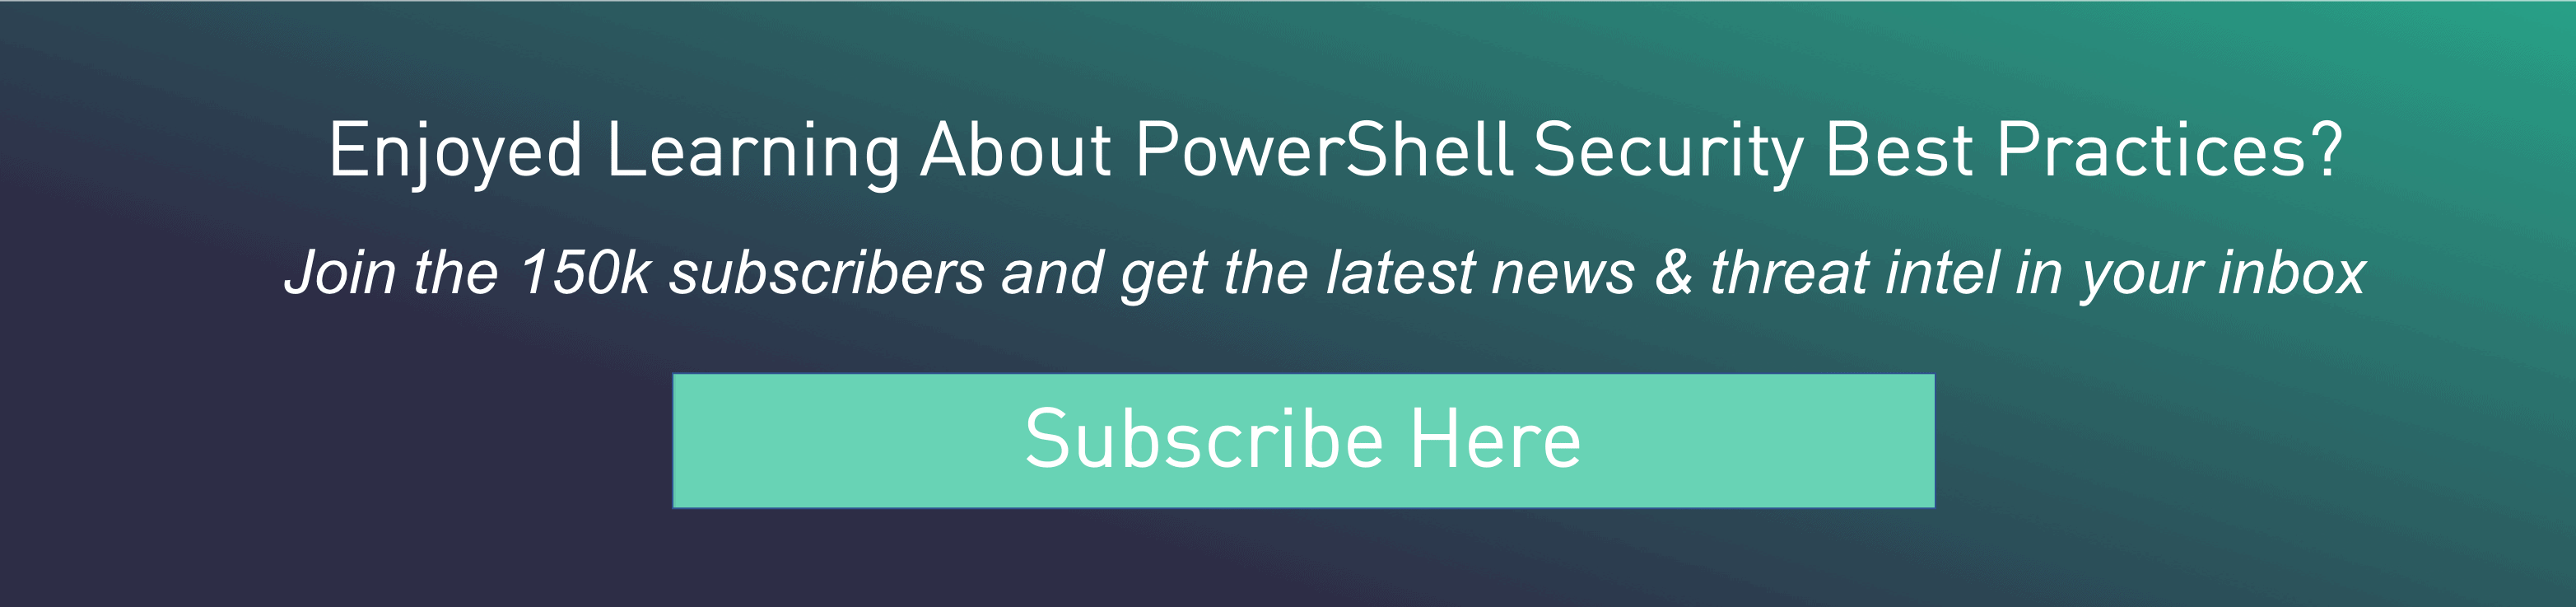 PowerShell Security Best Practices | Digital Shadows